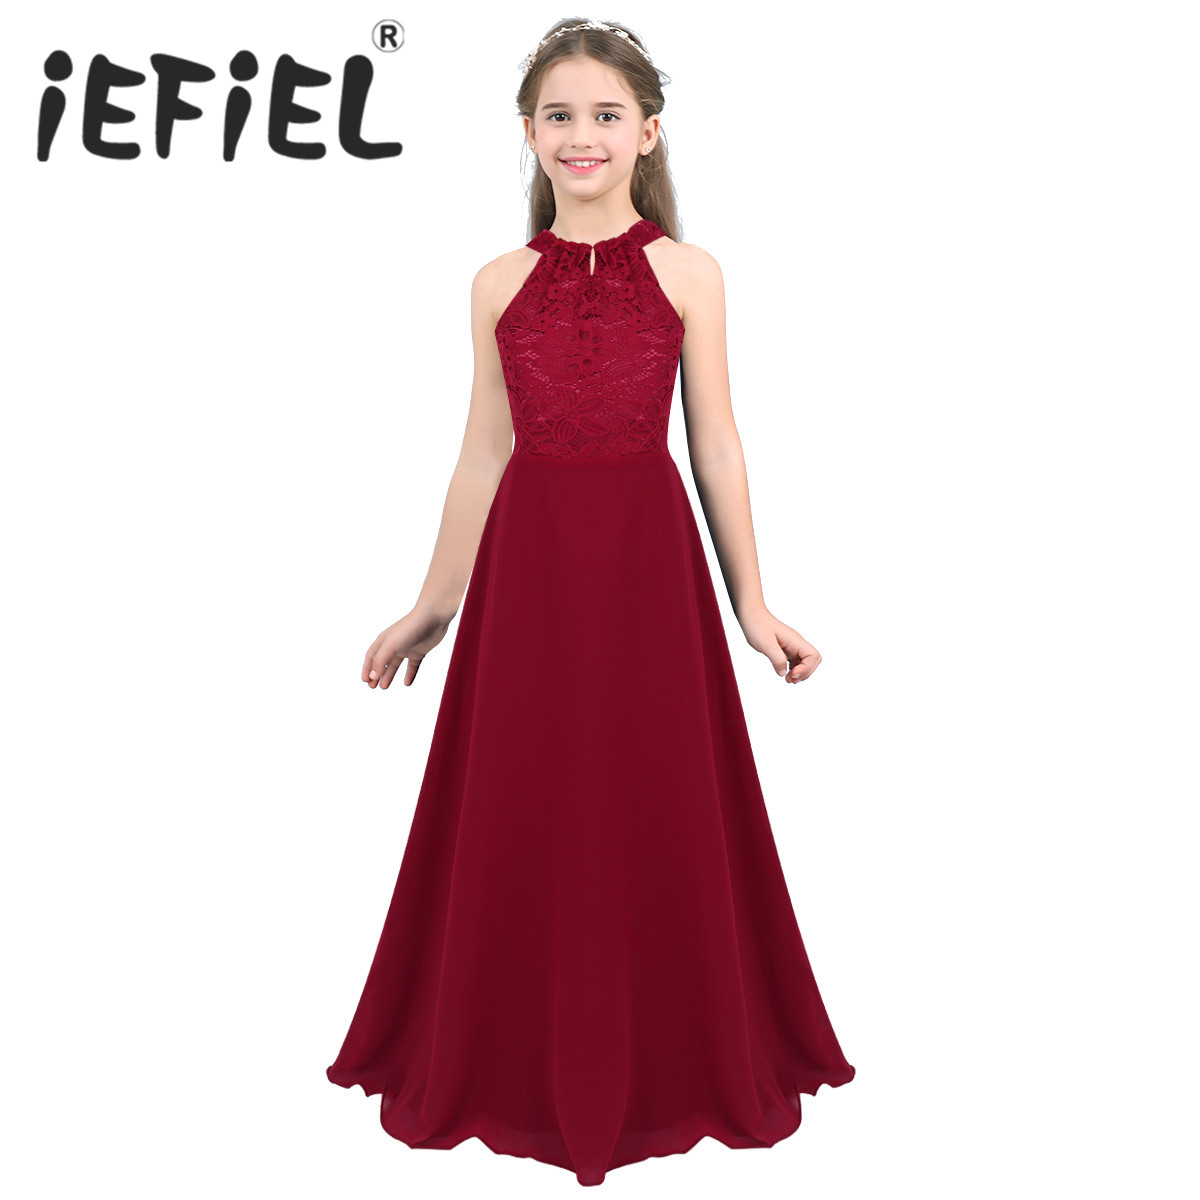 Elegant Flower Girls Dress Children Wedding Party Princess Floral Lace Cutout Back Dress Girls Clothes Formal Occasion Dress(China)